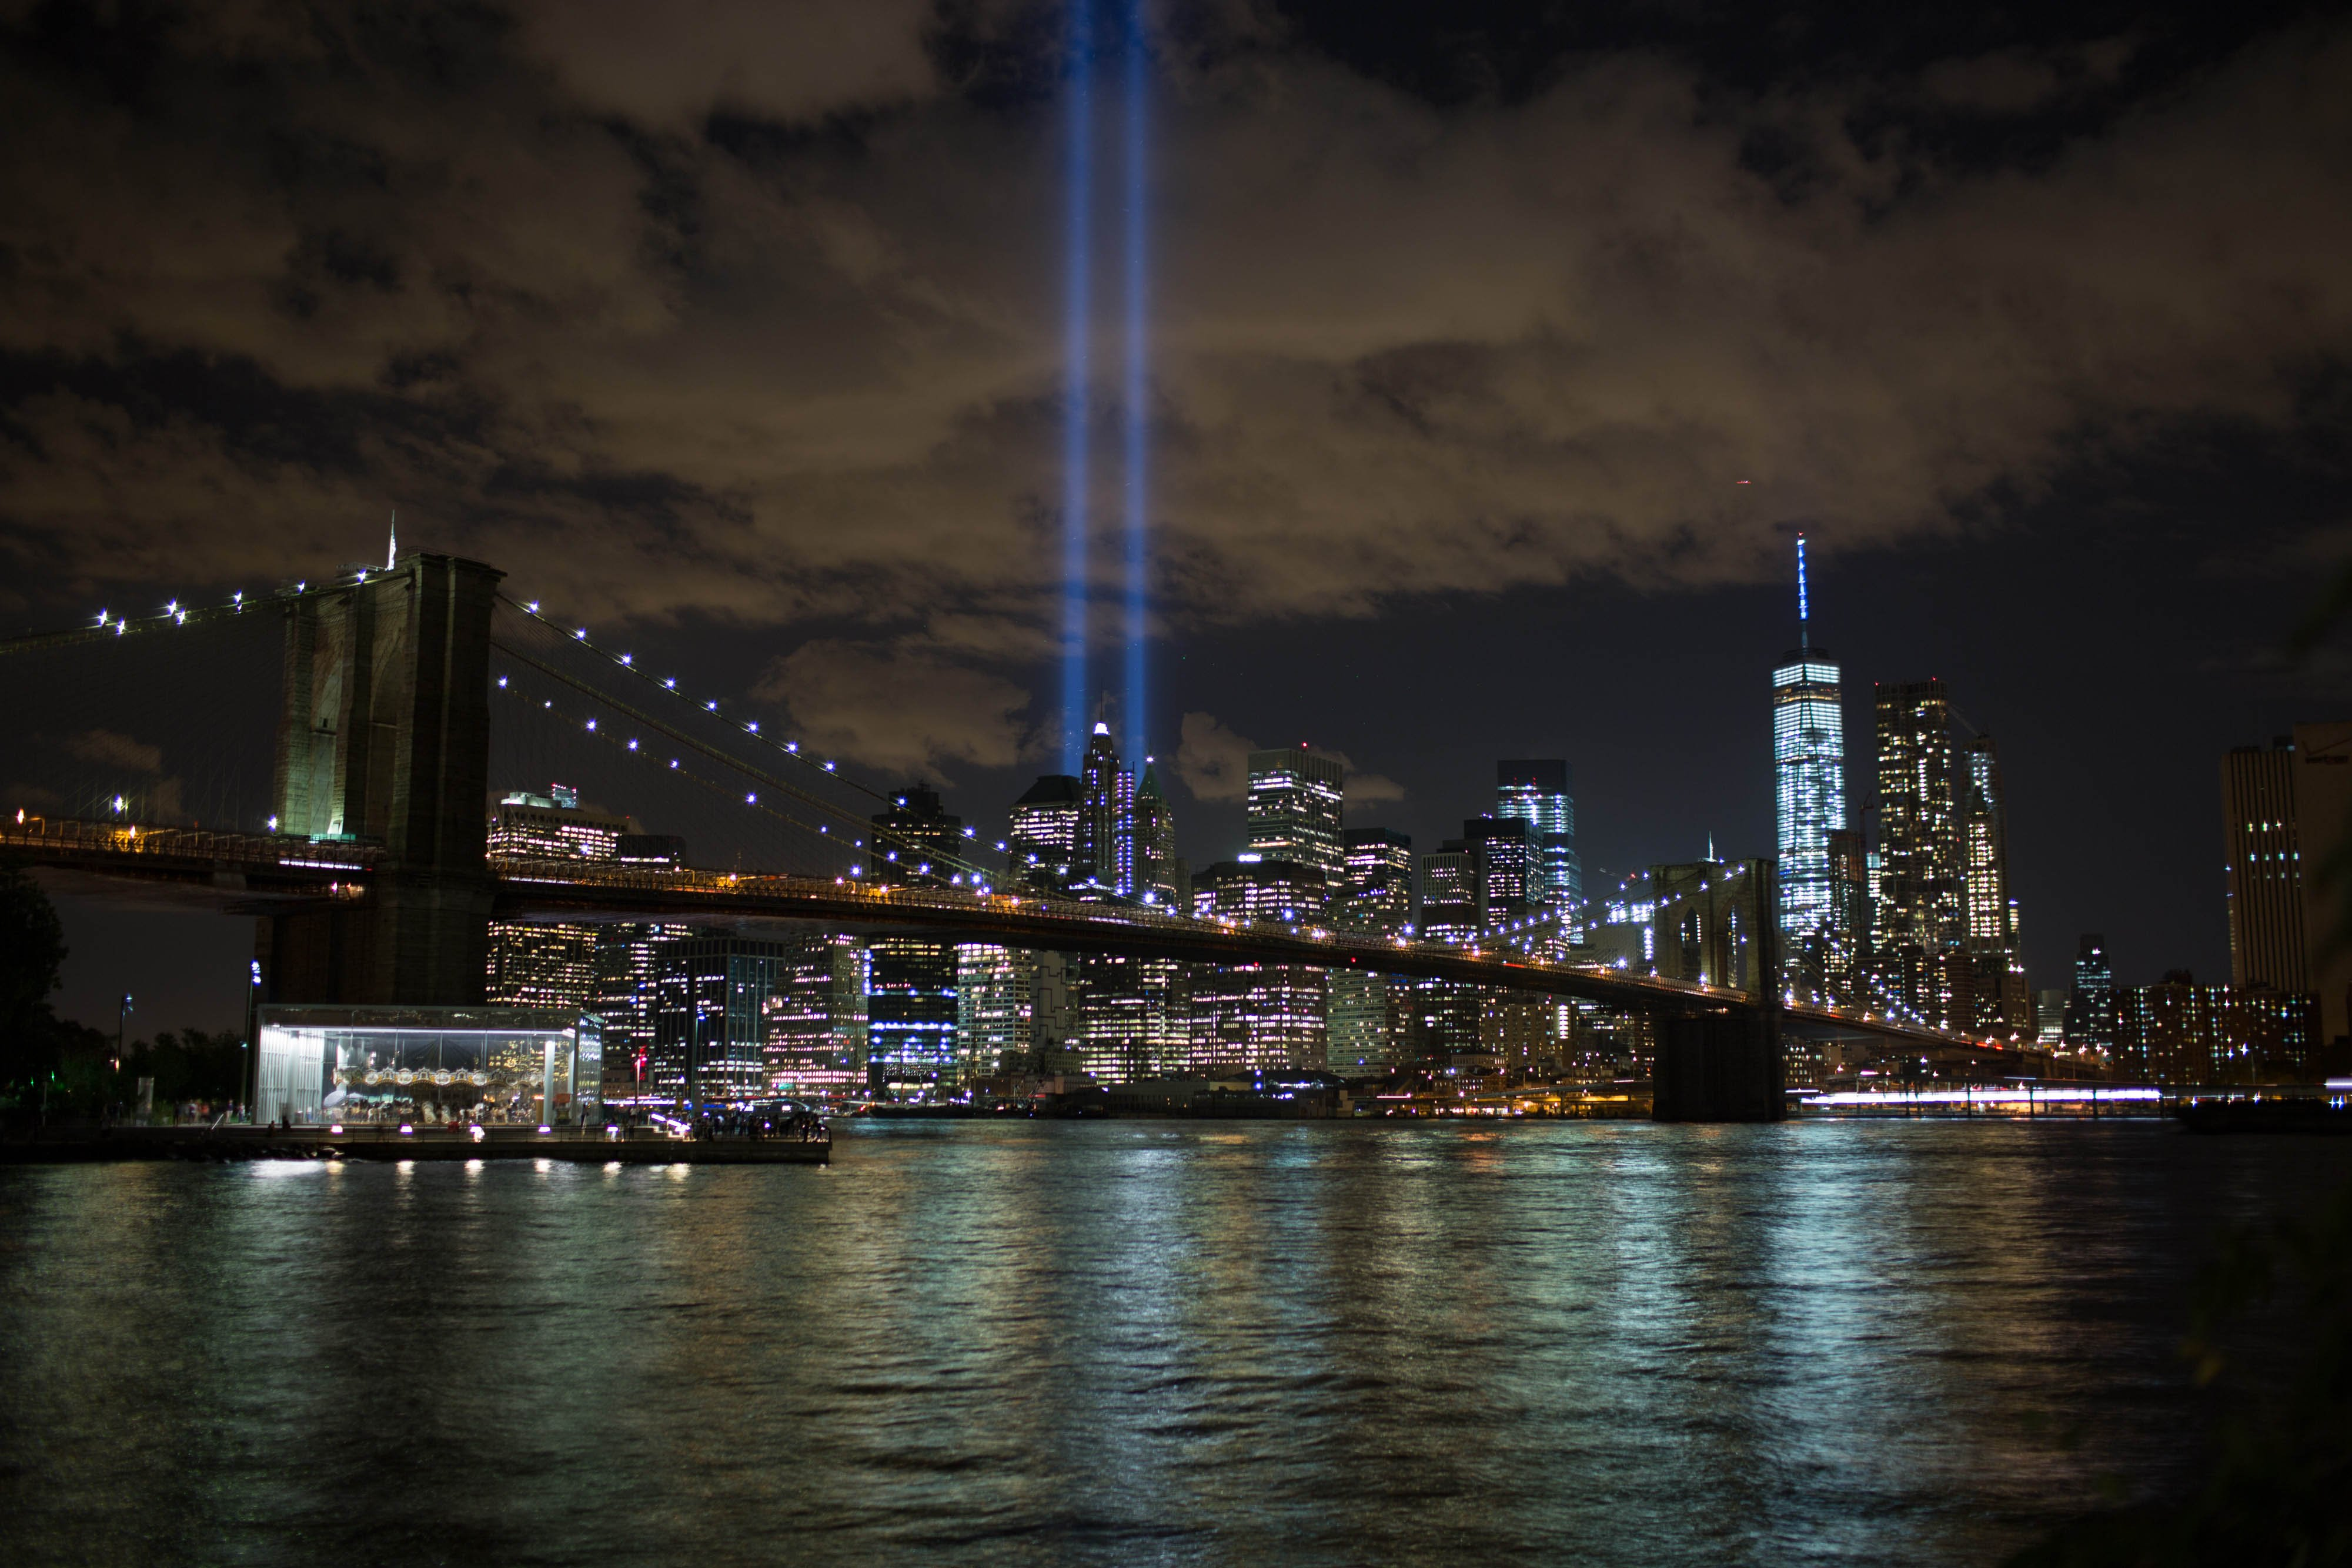 New York Citys 9 11 Tribute Creates Light Pollution That Affects Chapter Electrical Systems Engineering360 Source 911memorialorg